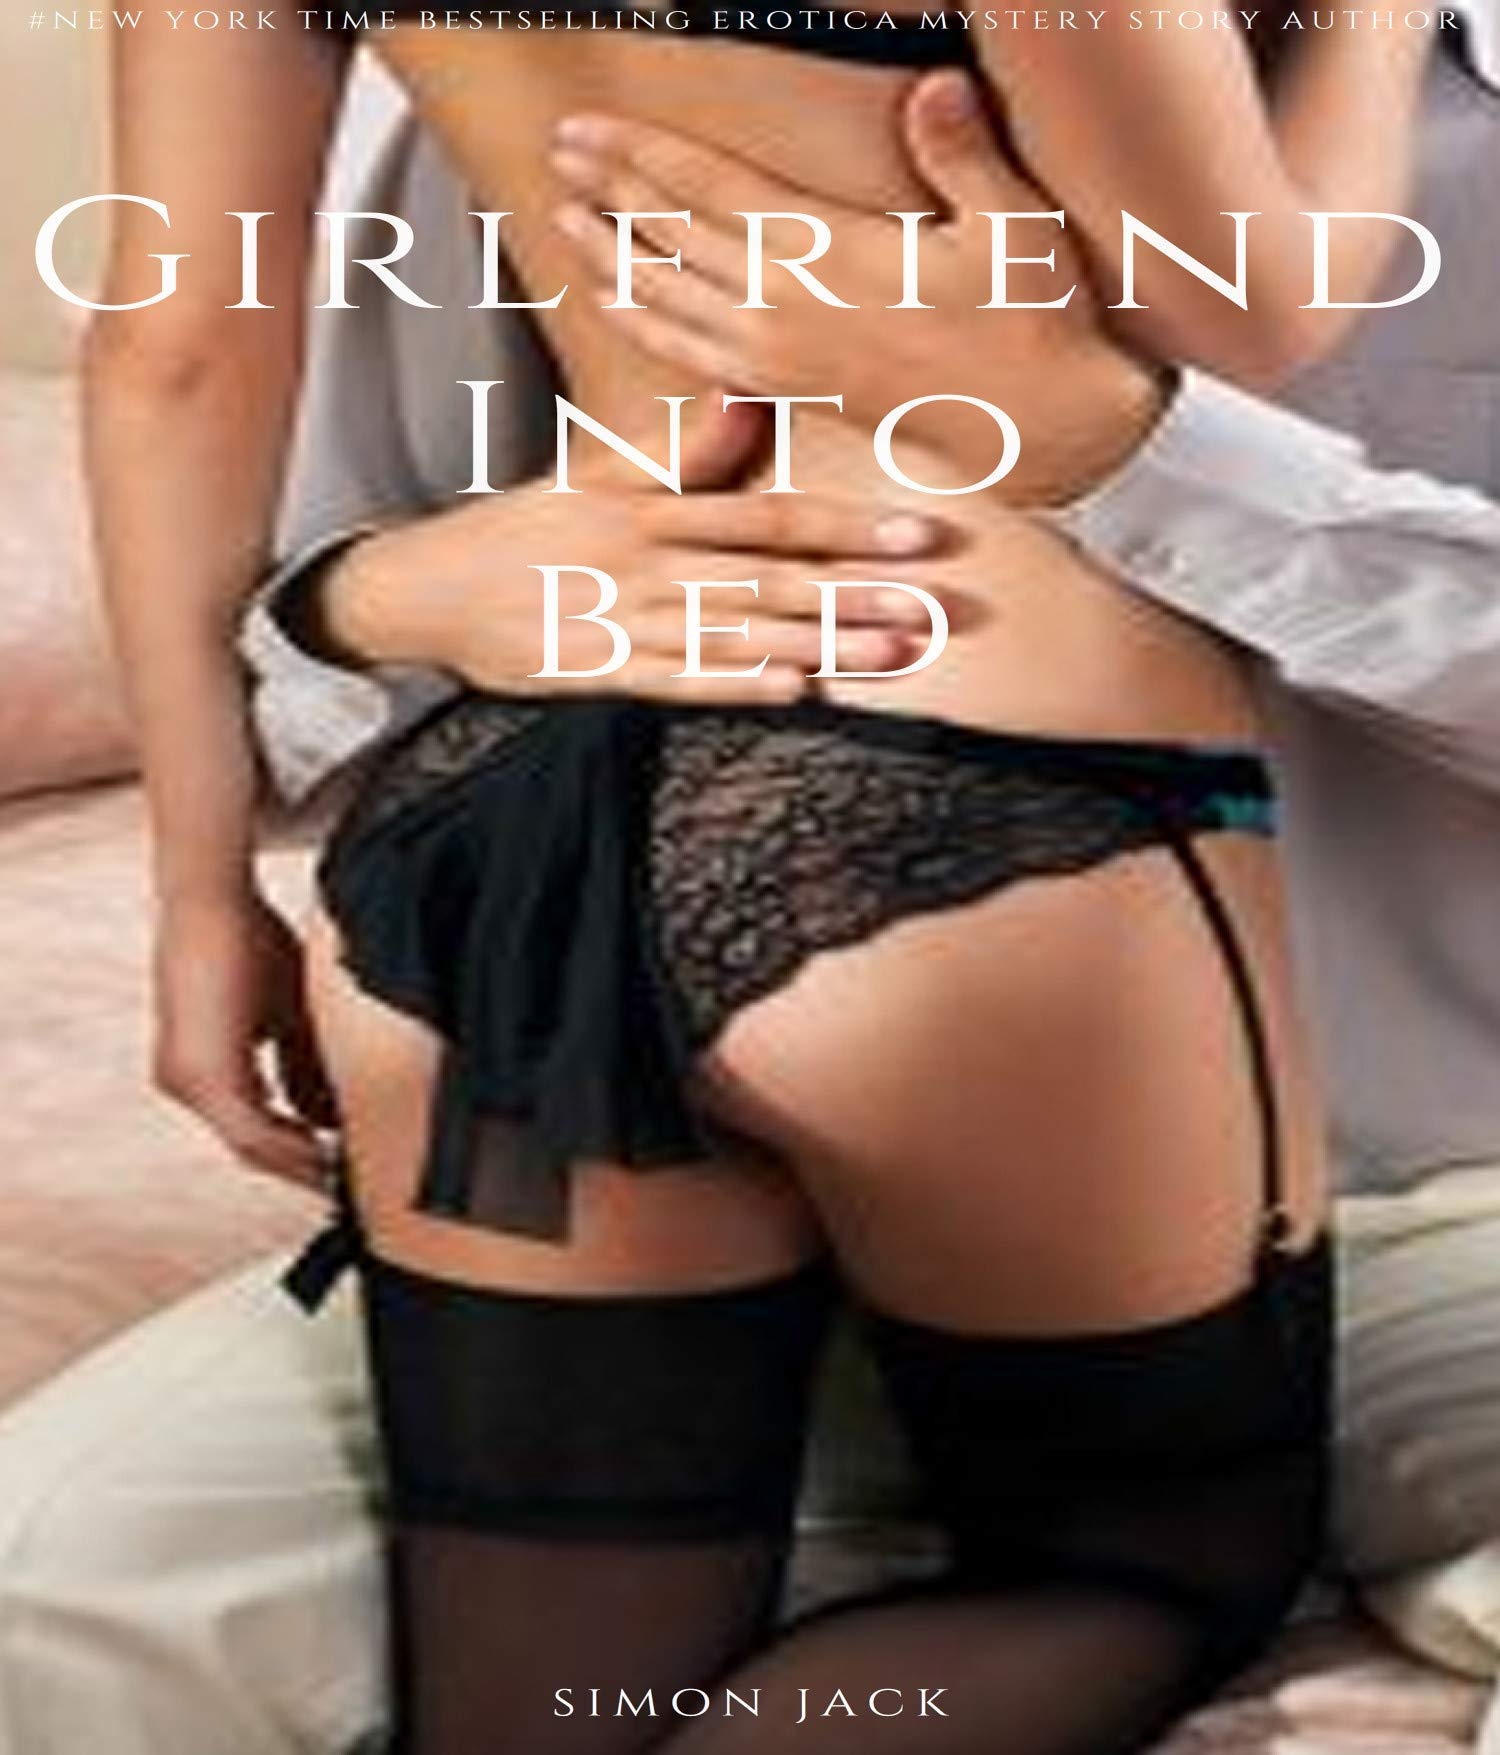 Seduction a Girlfriend Into Bed: Mysteries and Thrillers Dirty Eroctica Stories Novel Two Books (Spicy Nights Book 6)